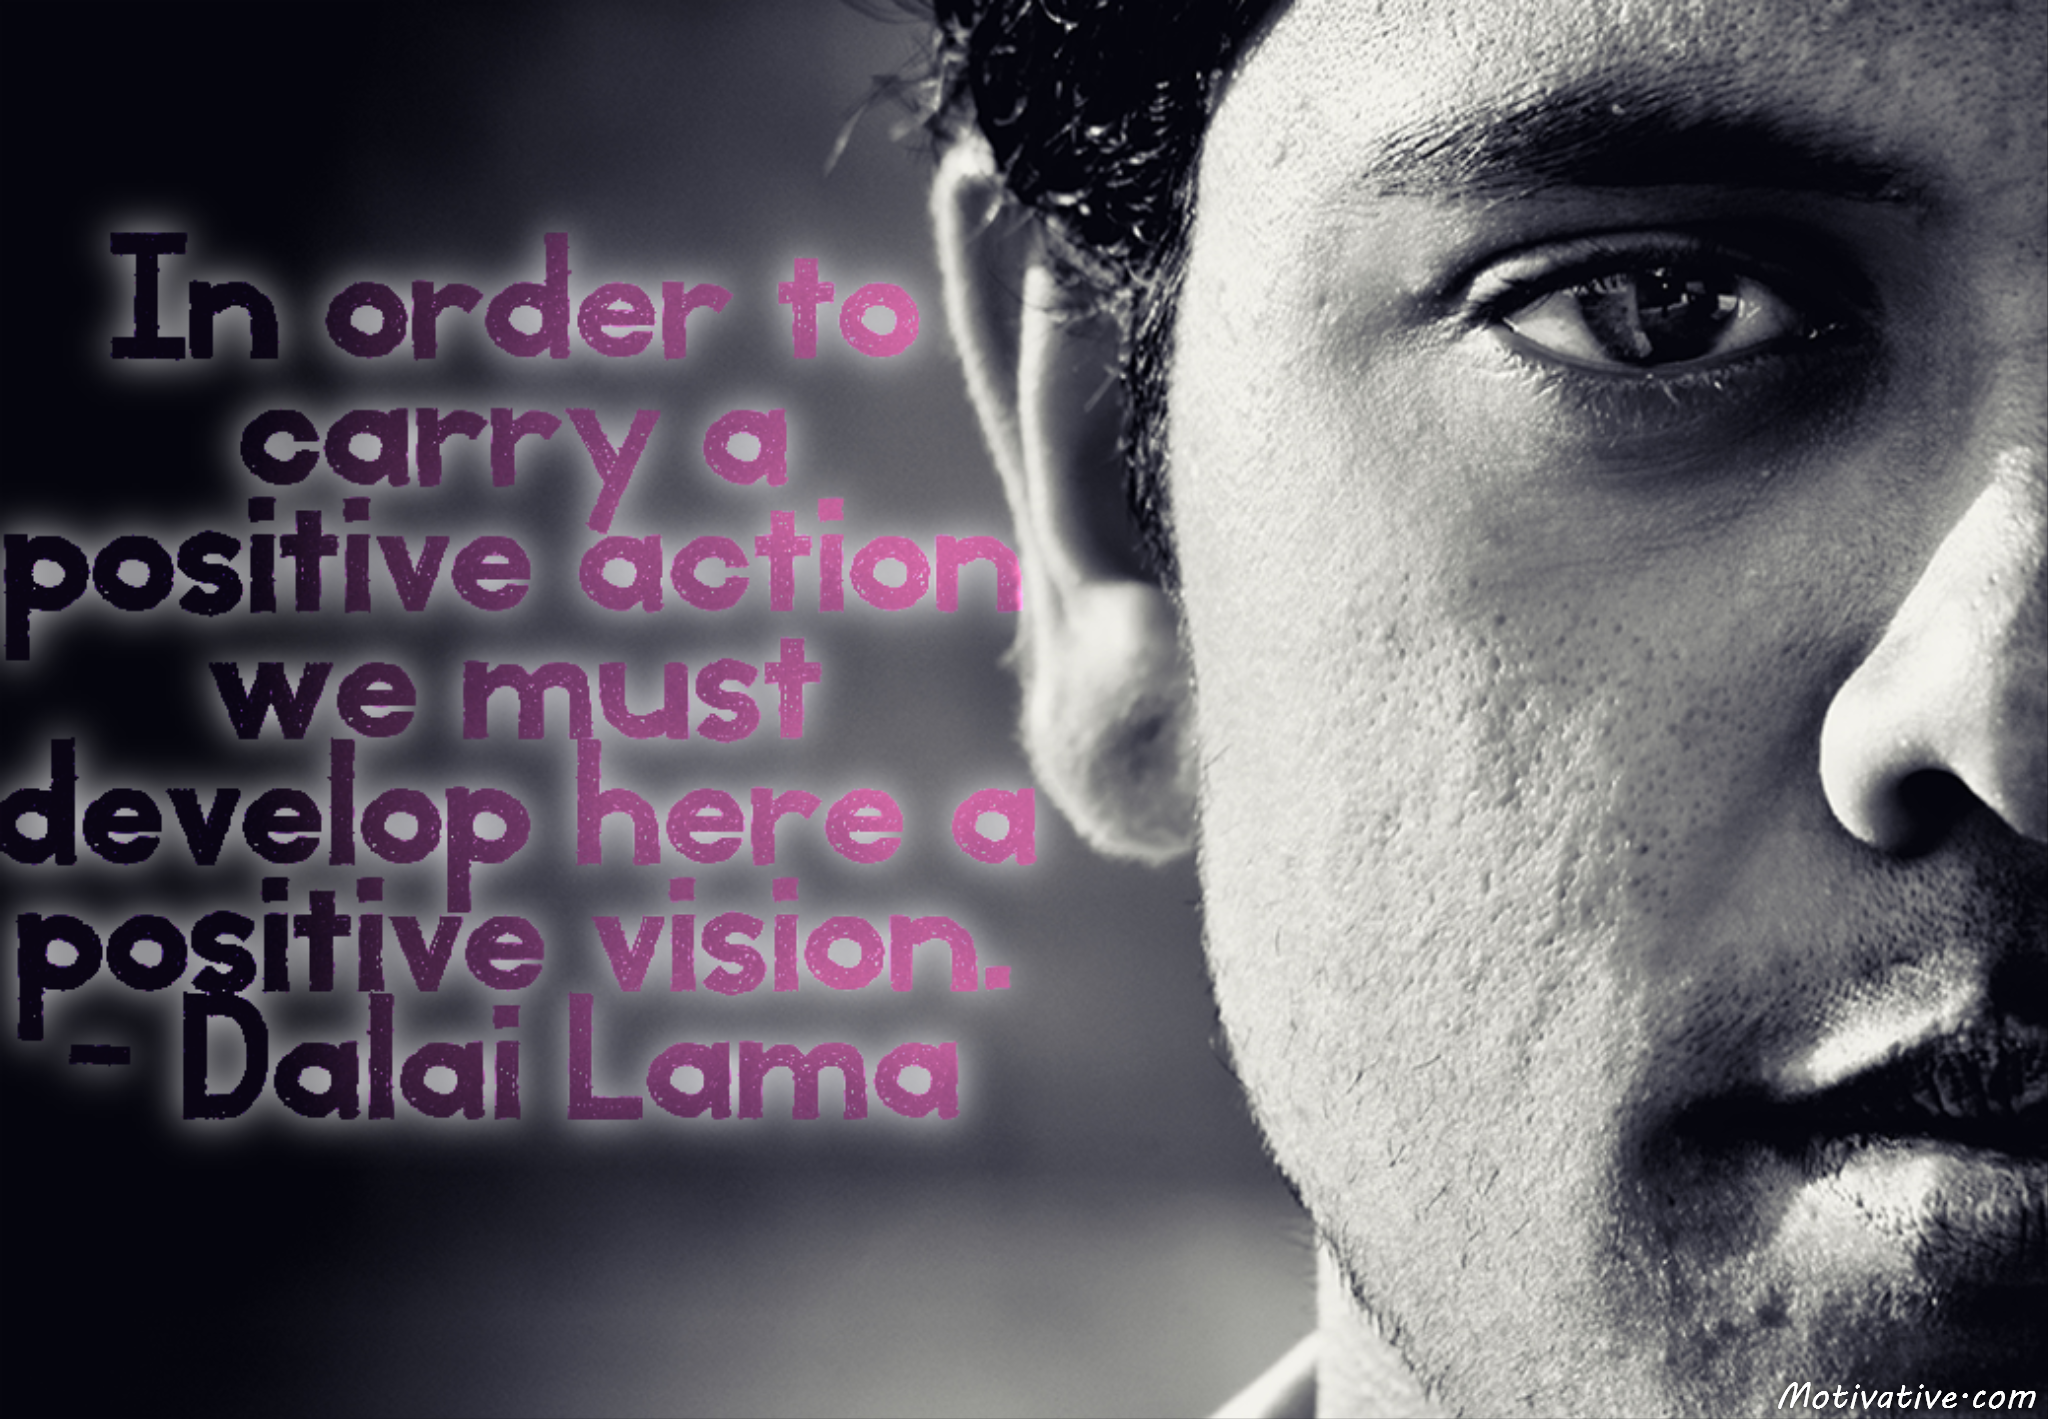 In order to carry a positive action we must develop here a positive vision. – Dalai Lama